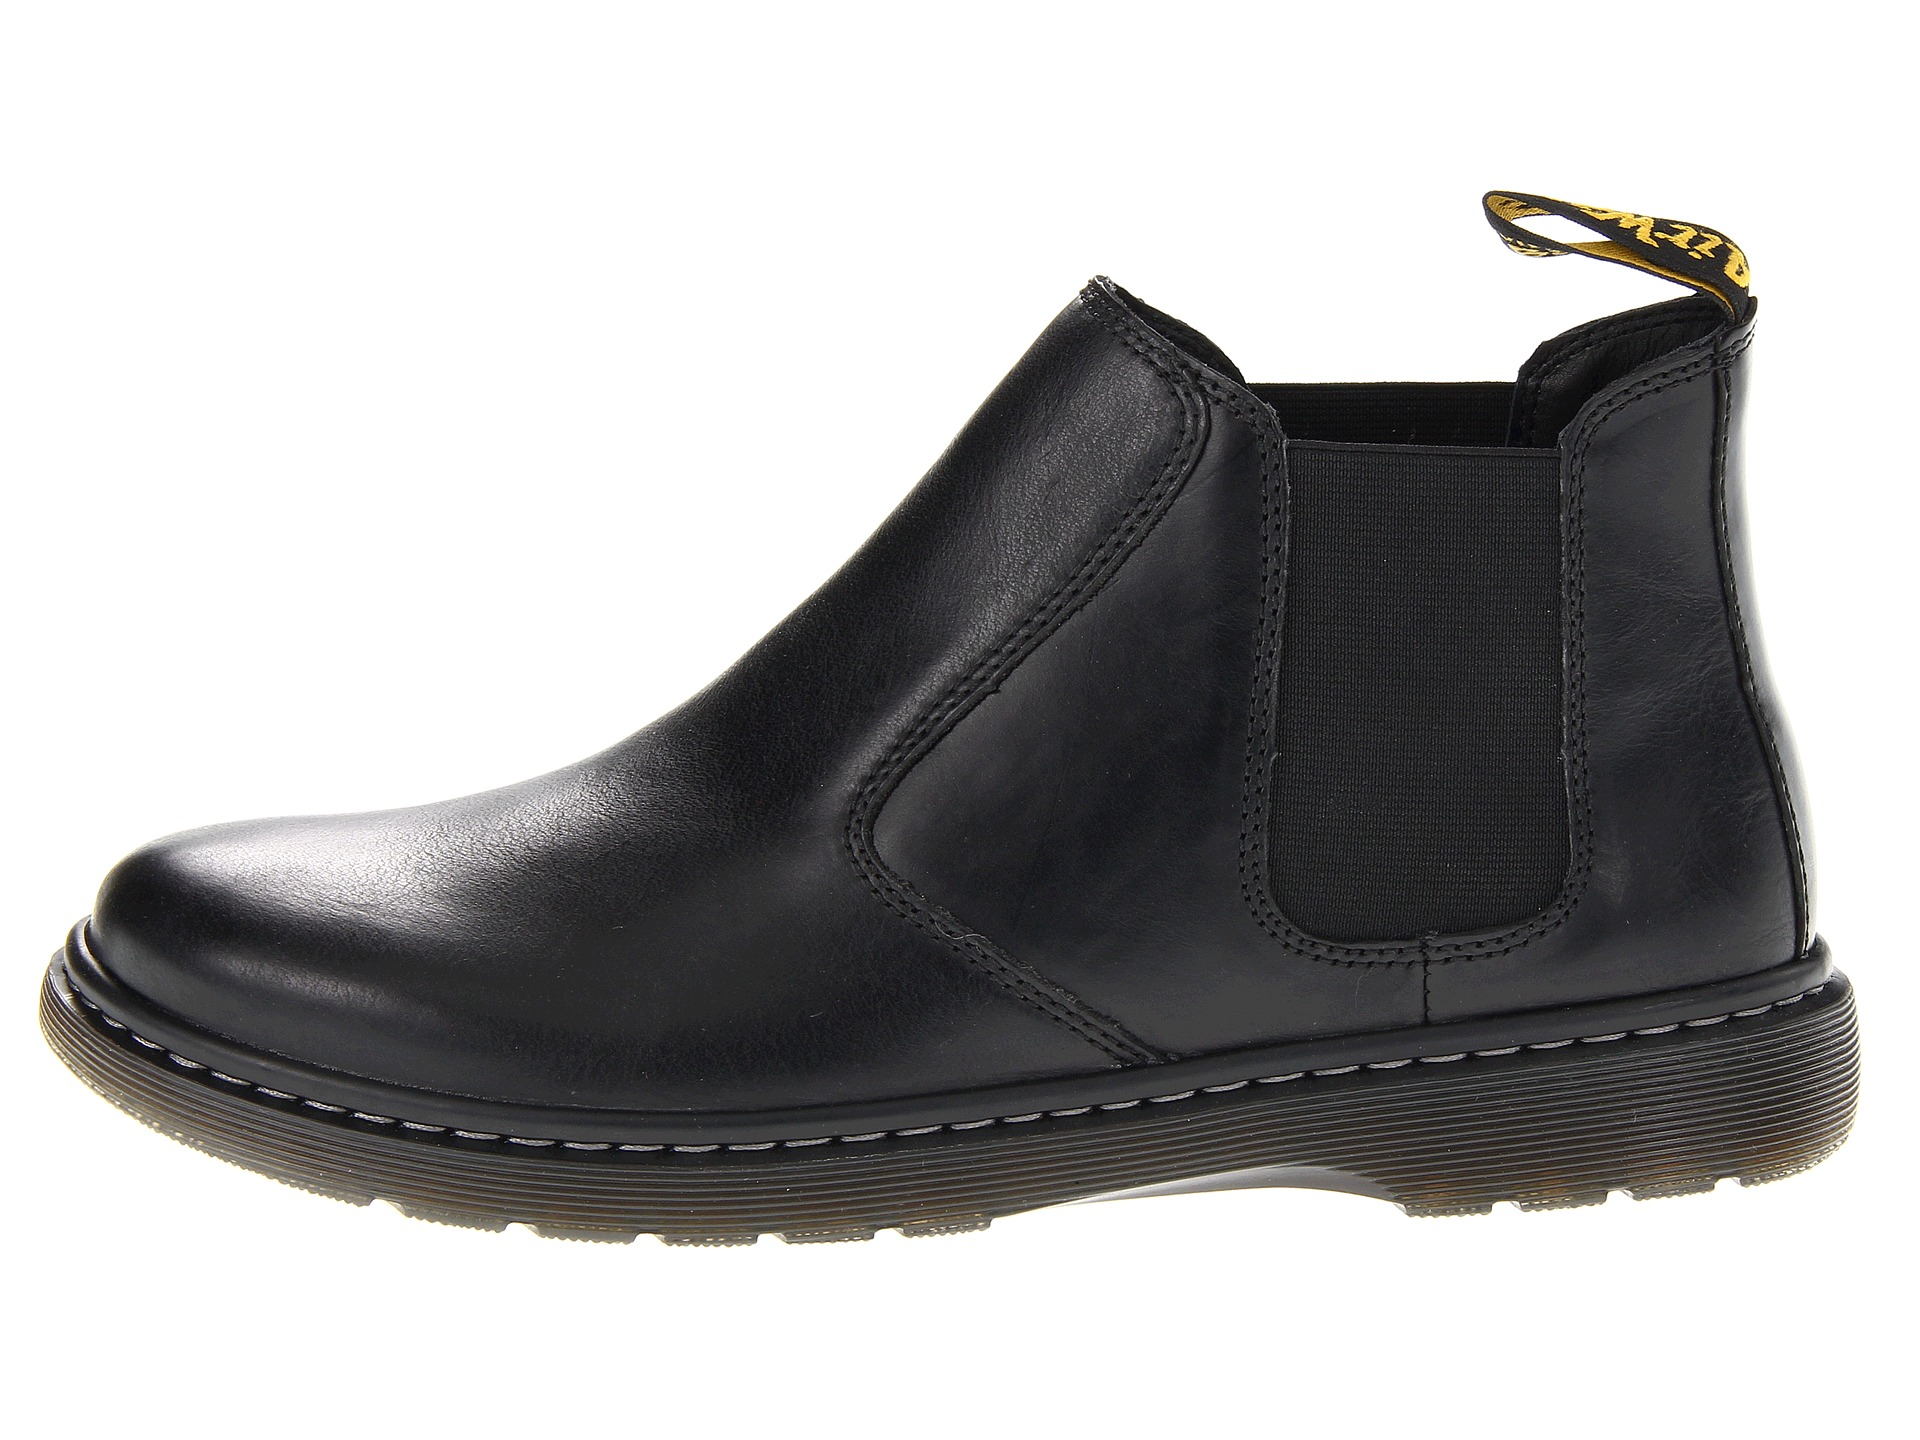 dr martens conrad chelsea boot shoes shipped free at zappos. Black Bedroom Furniture Sets. Home Design Ideas